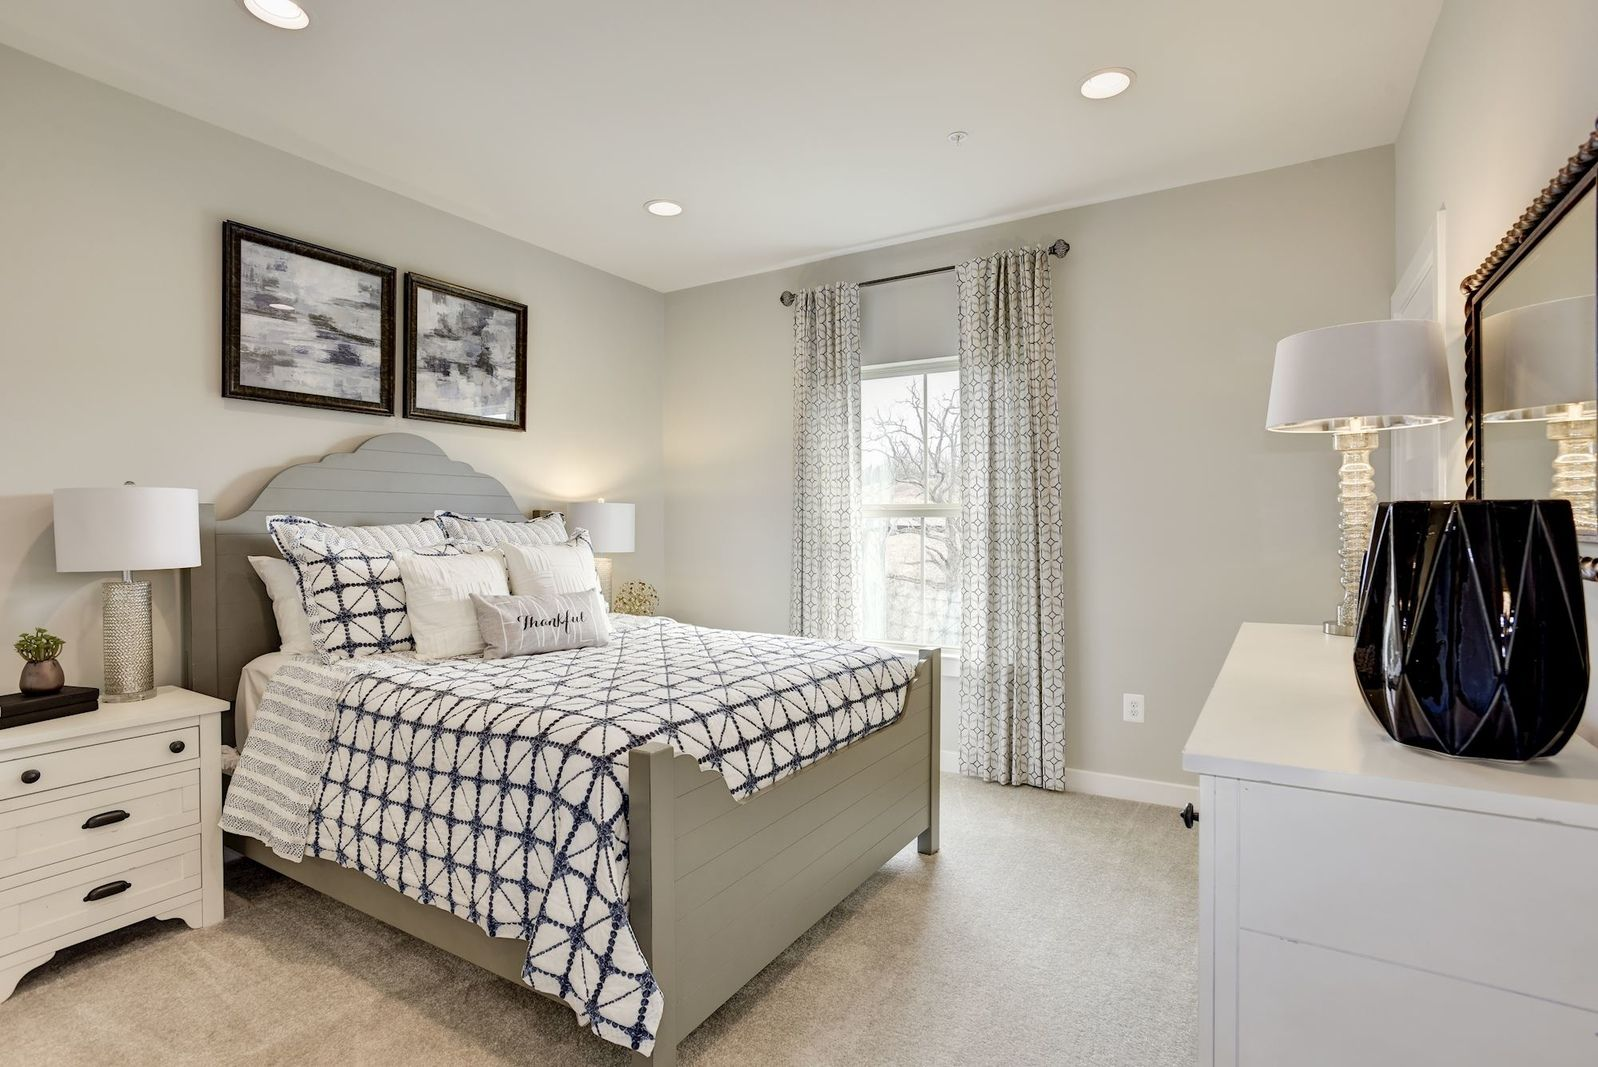 Bedroom featured in the Normandy By Ryan Homes in Washington, MD